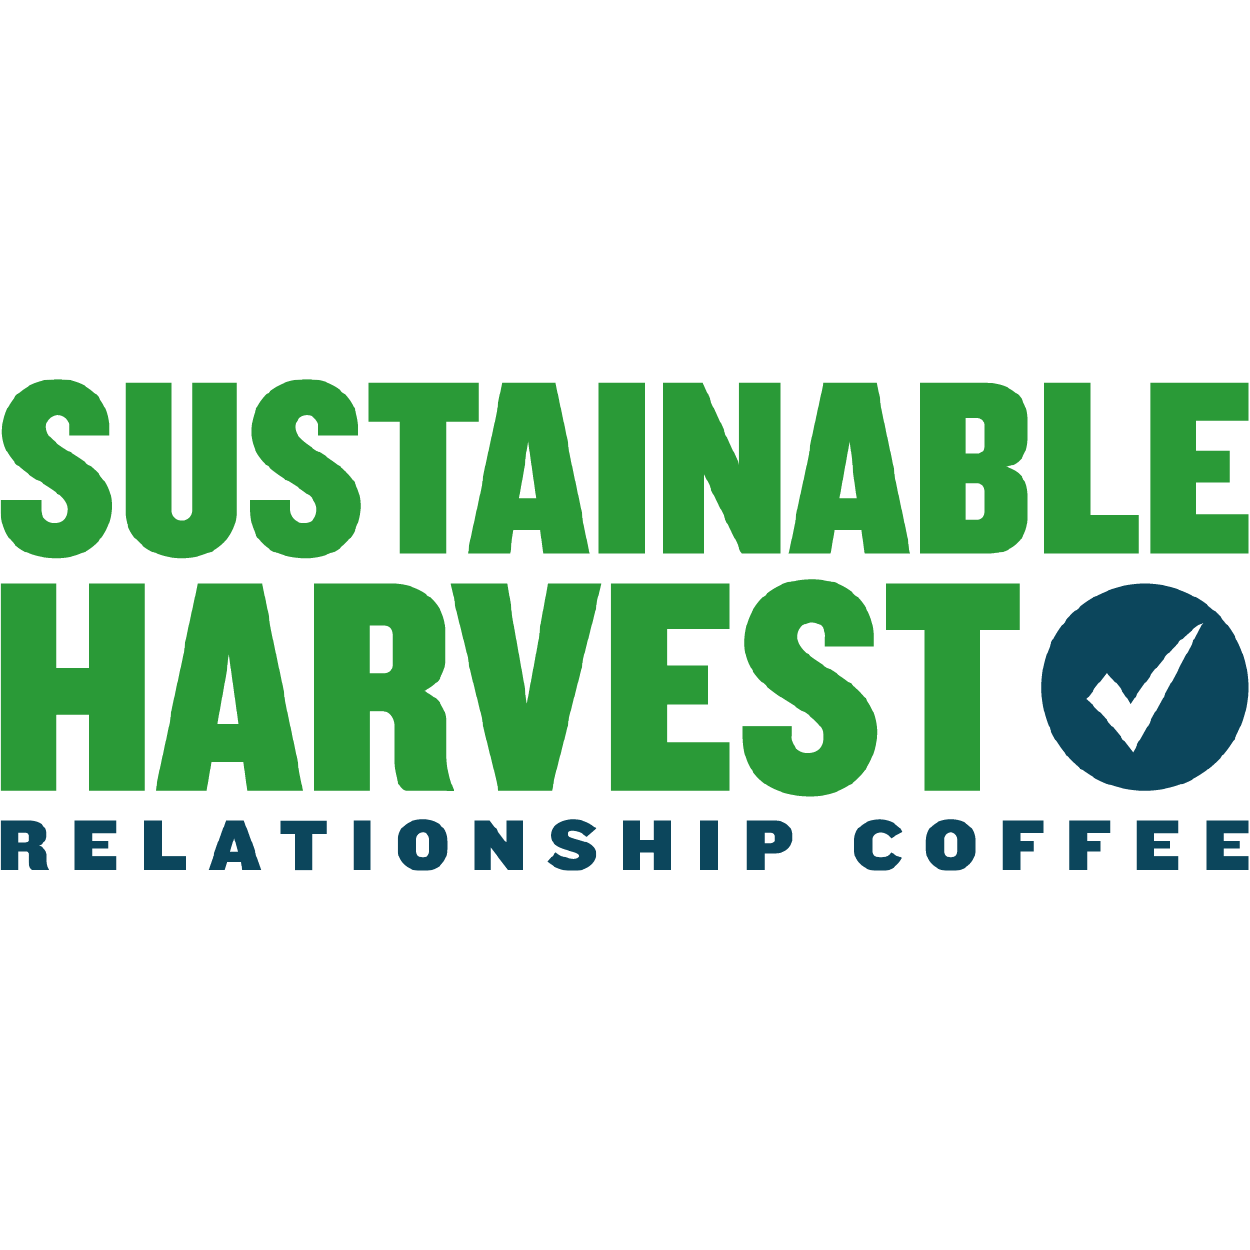 Sustainable Harvest Relationship Coffee icon